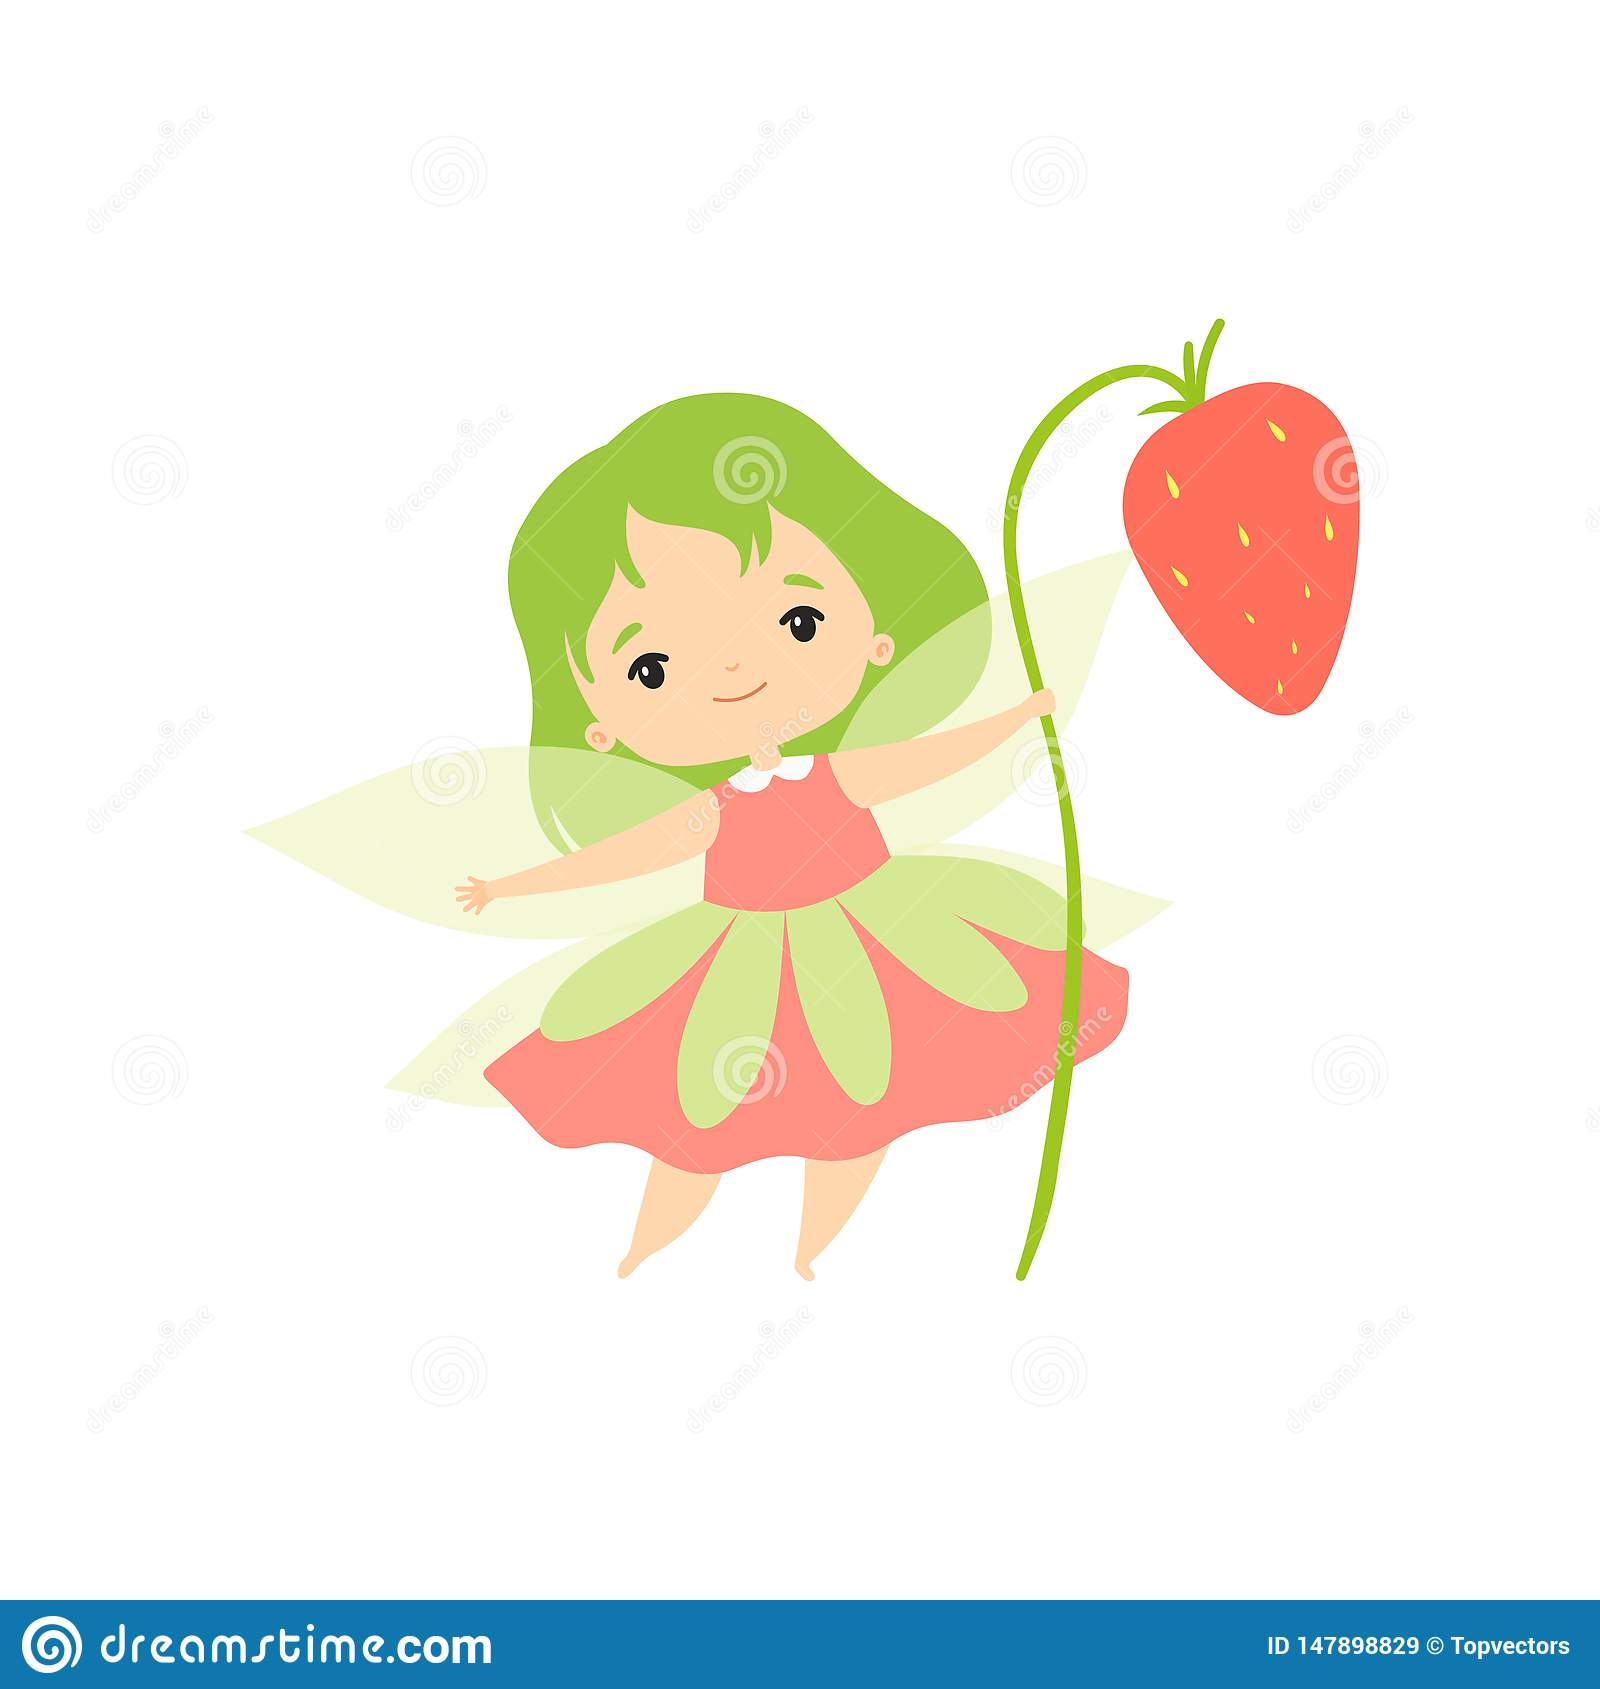 Little Forest Fairy with Wild Strawberry, Lovely Fairy Girl Cartoon Character with Green Hair and Wings Vector